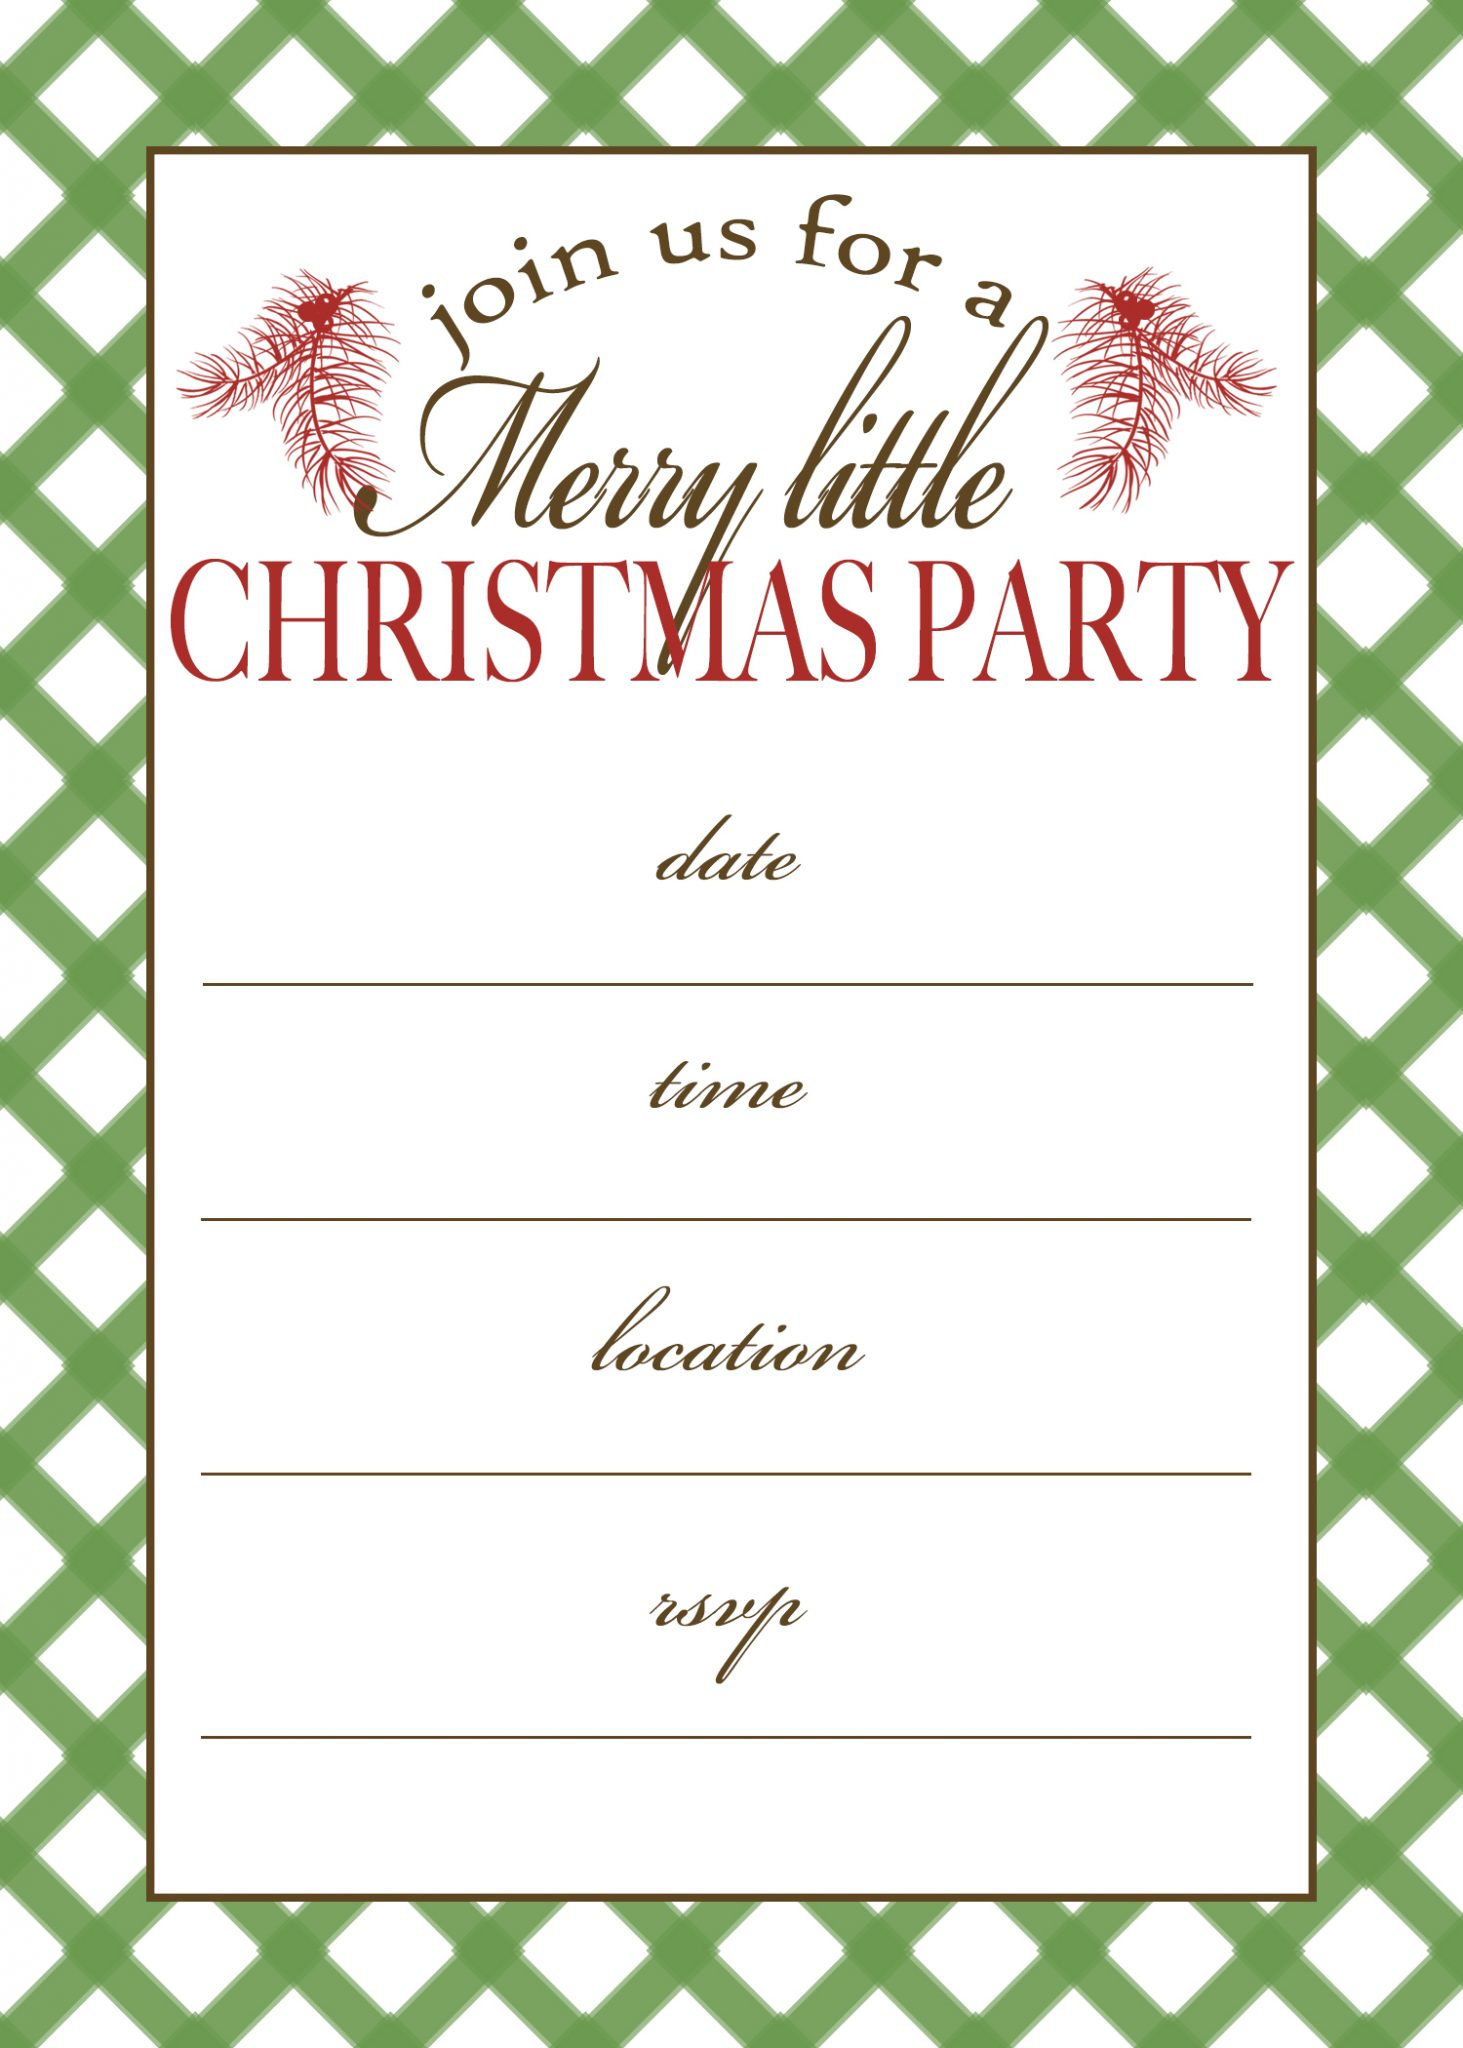 free printable christmas party invitation moritz fine designs